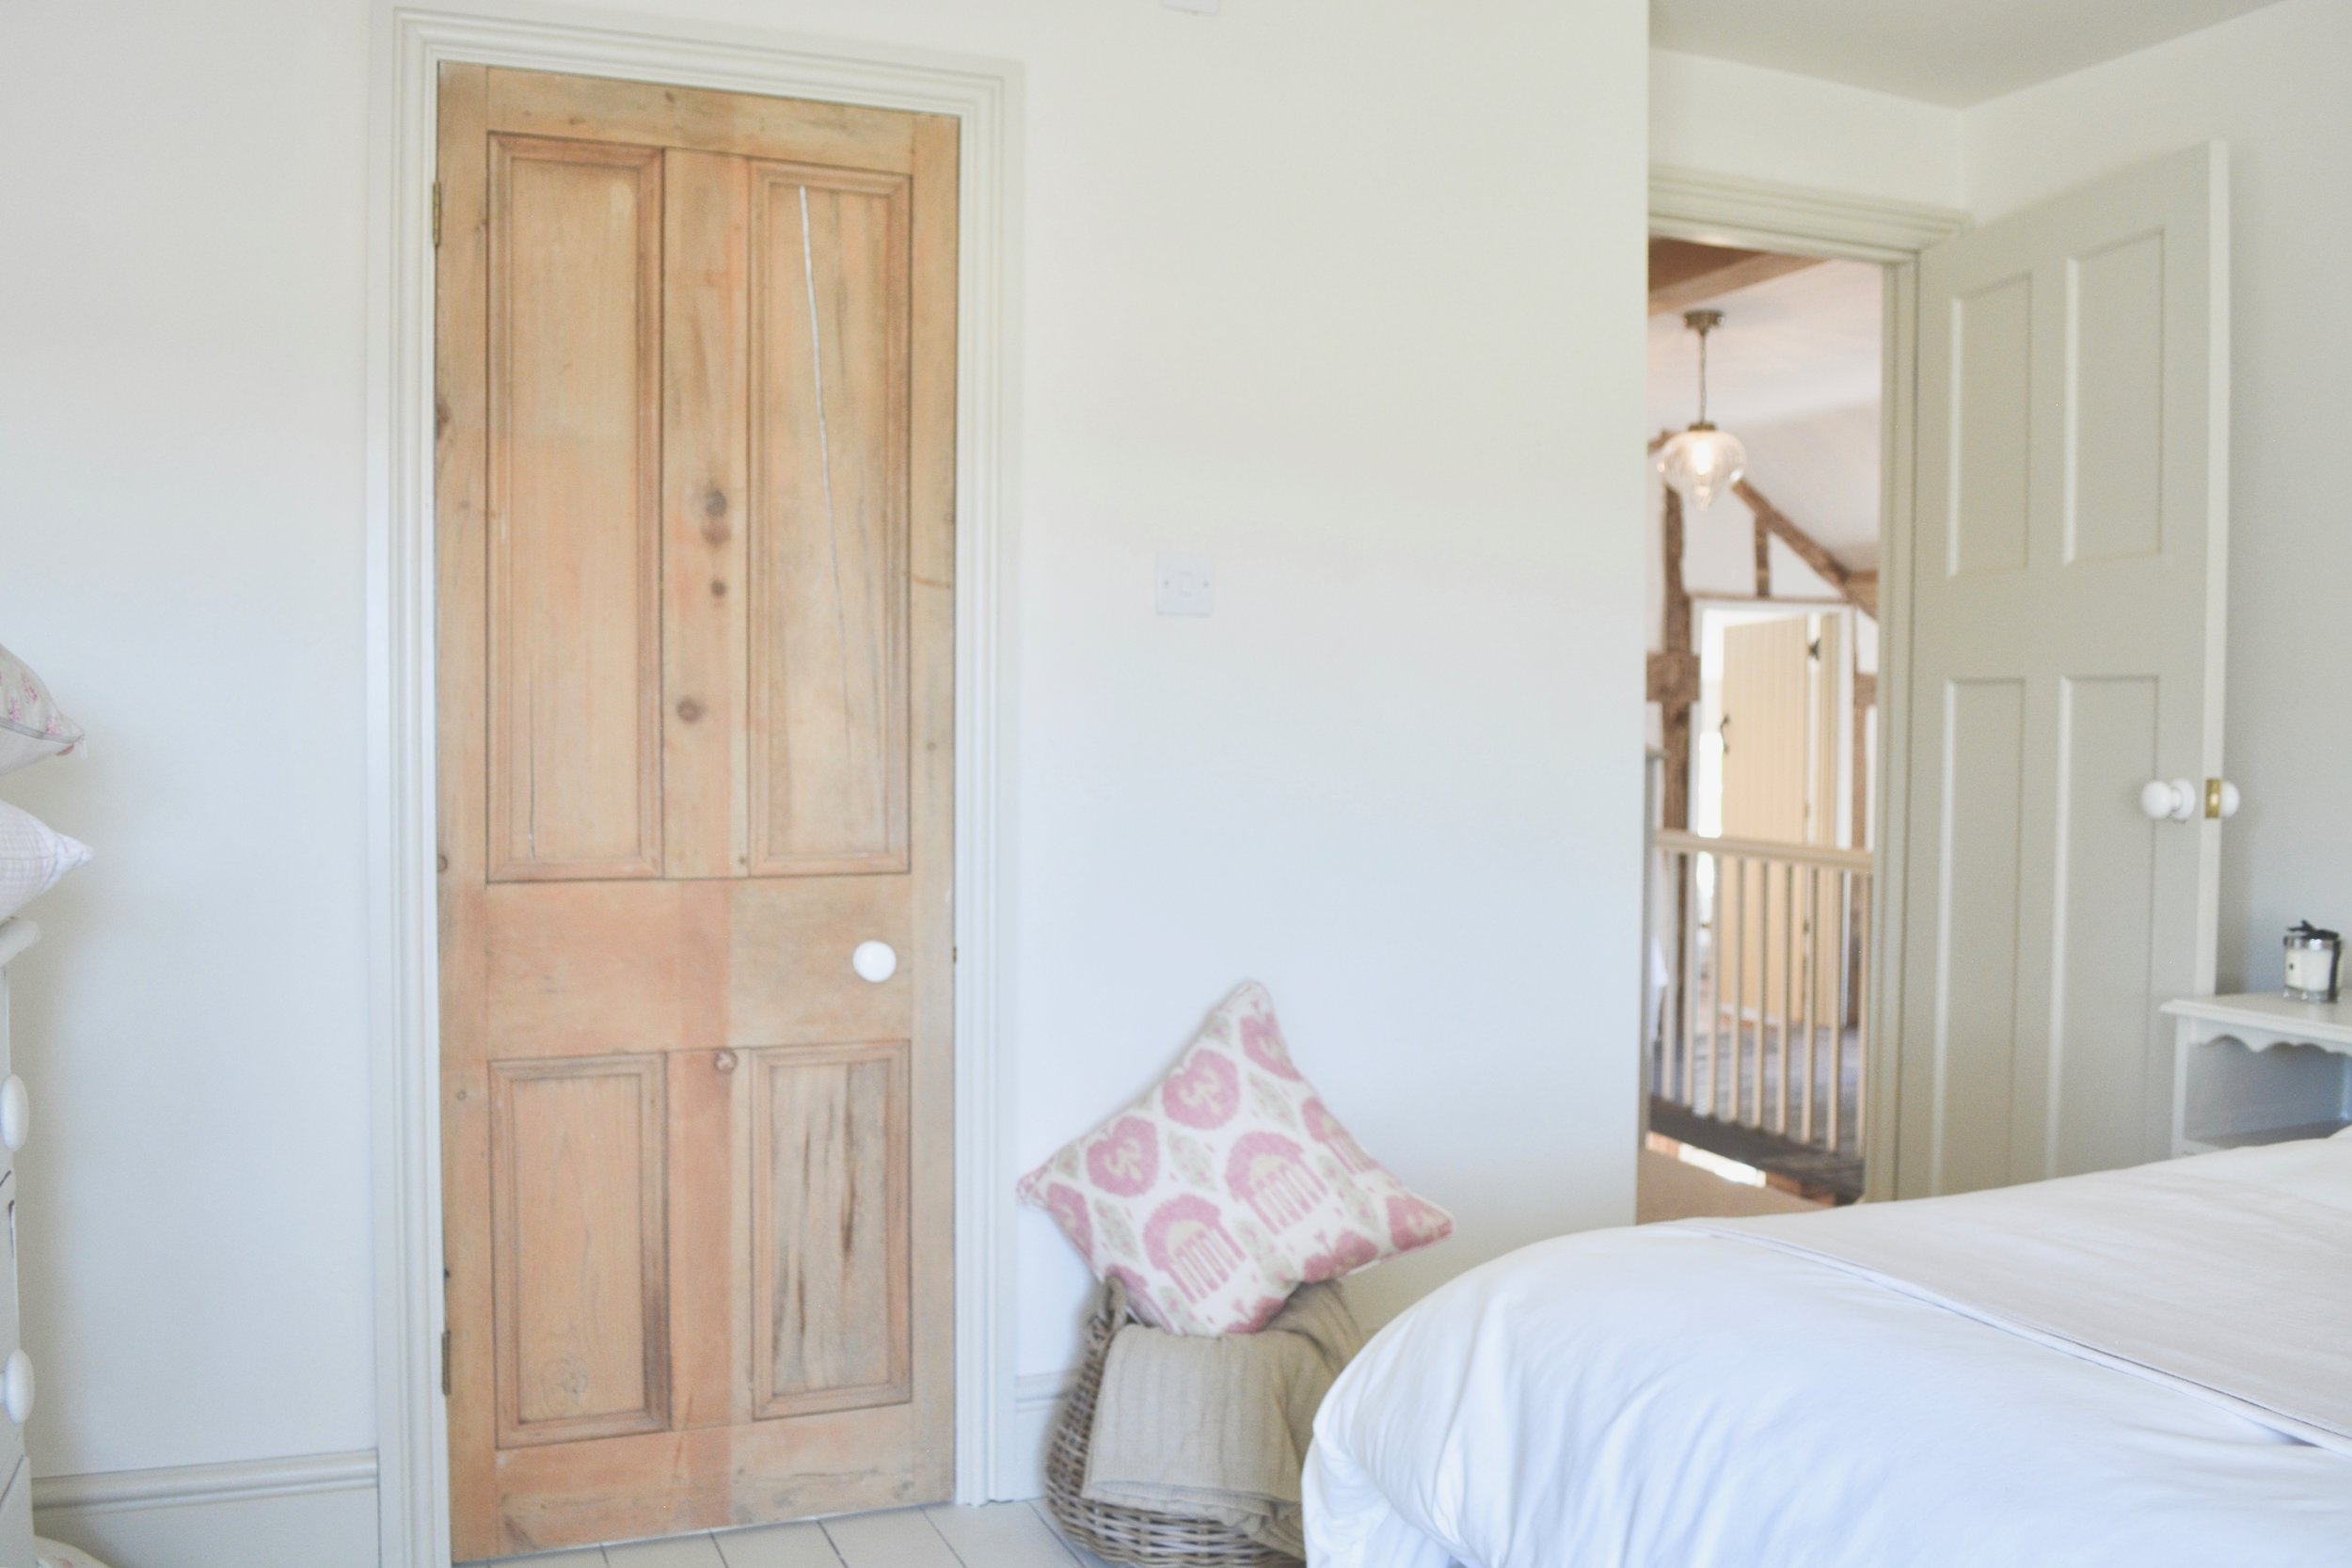 Herefordshire Farmhosue Project - Designed by Hannah Llewelyn Interior Design - hlinteriors.co.uk4.jpg